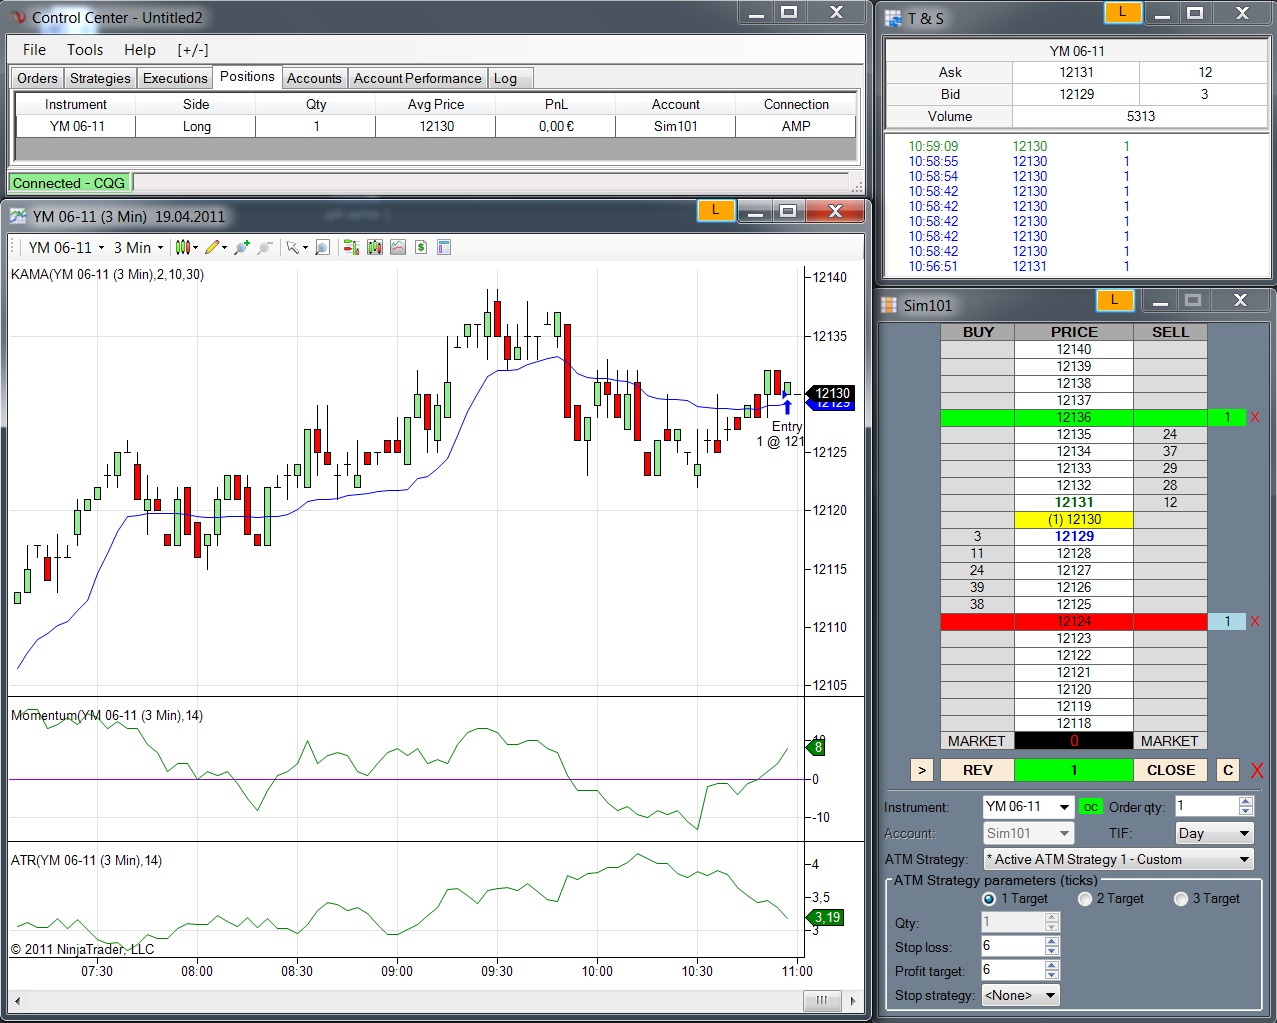 Forex brokers using ninjatrader